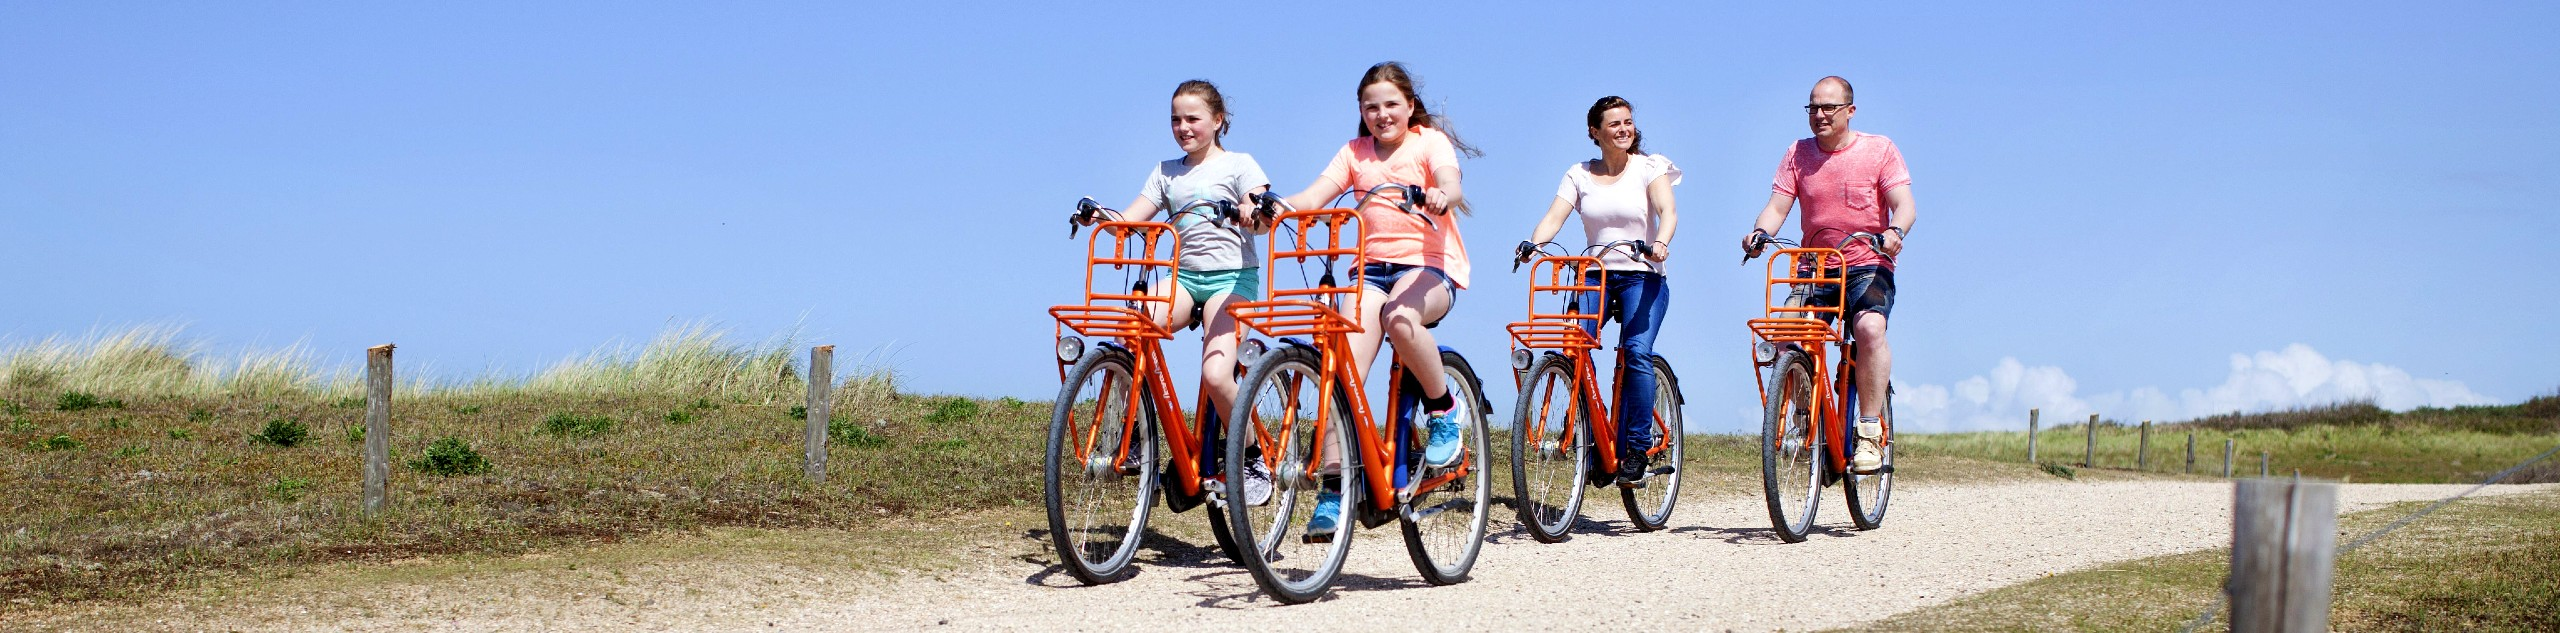 Holland Family Cycling Tour: Beaches, Dunes, and Cities